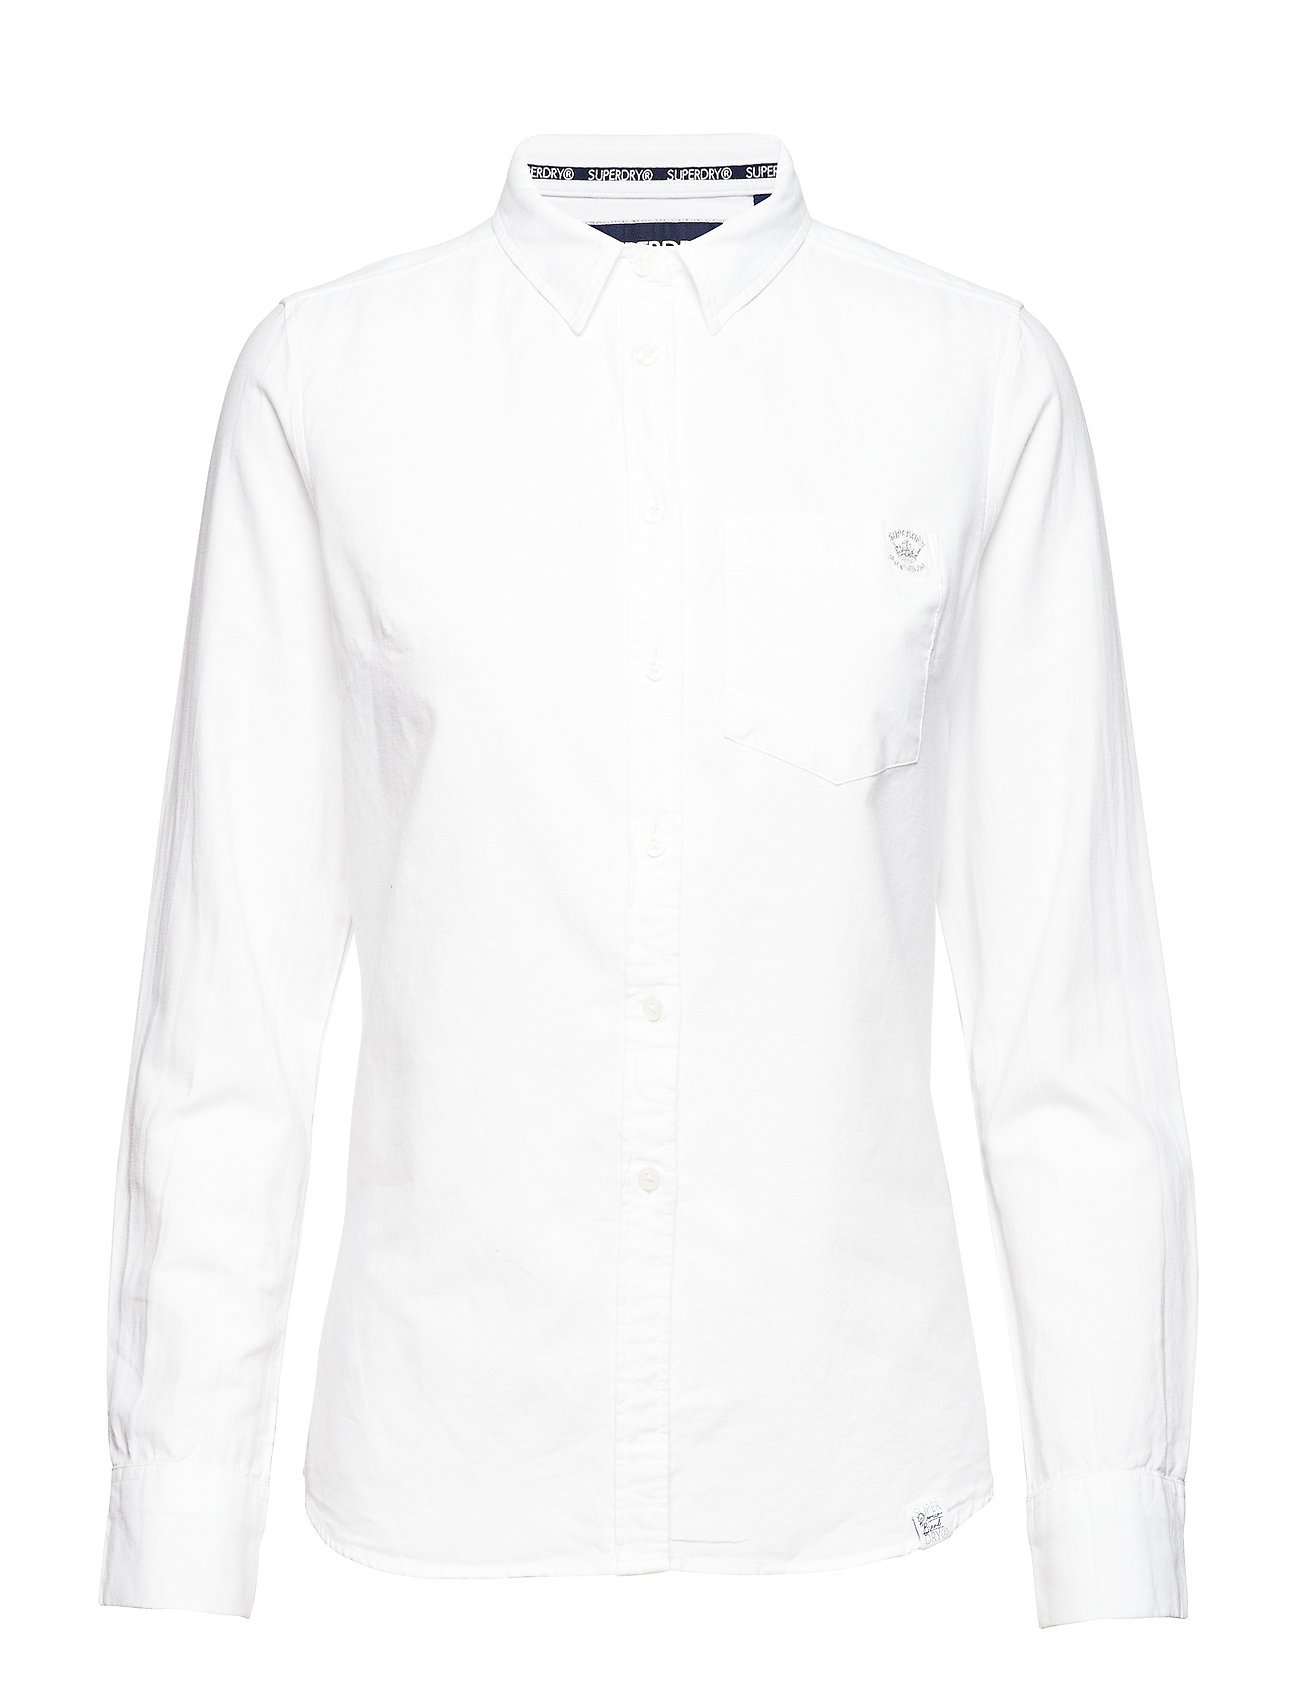 Superdry OXFORD SHIRT - WHITE